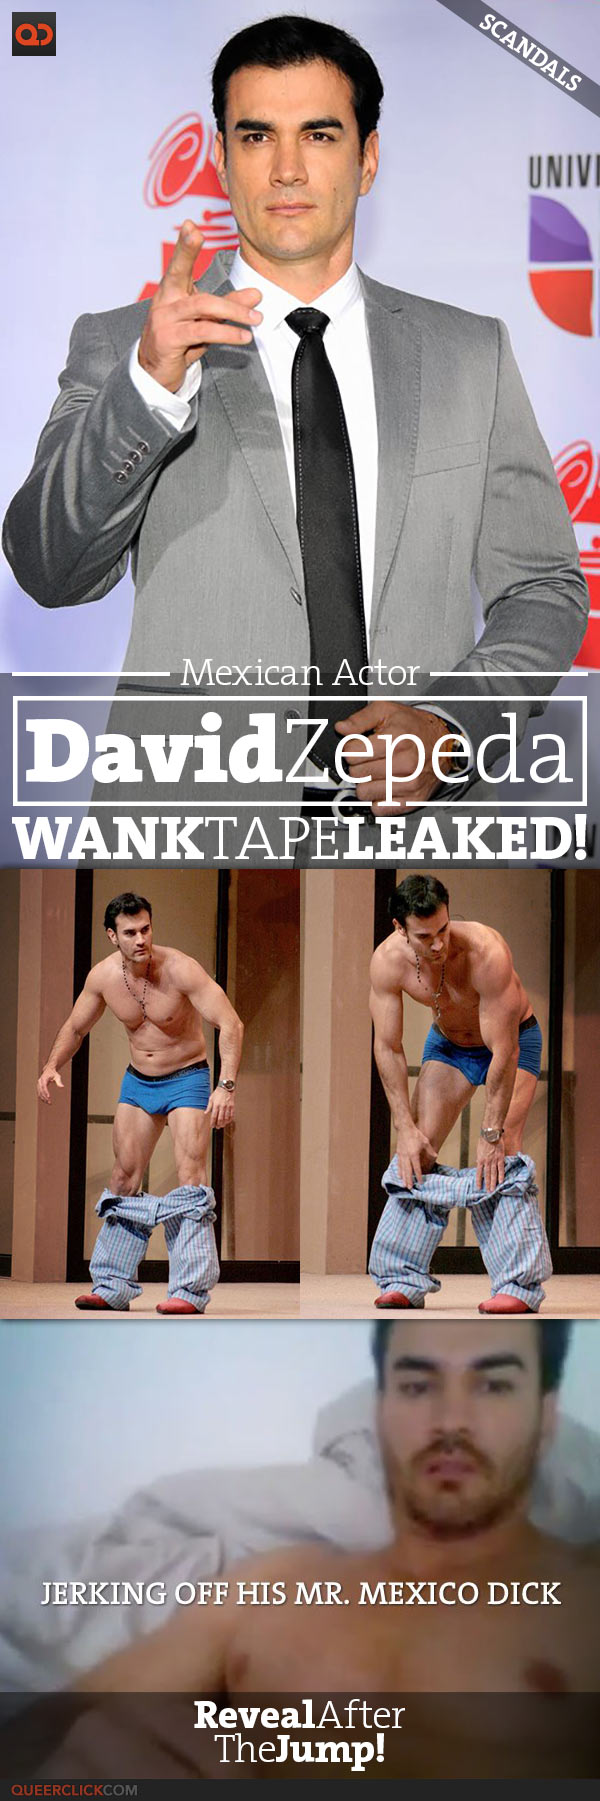 QC Scandals: David Zepeda, Mexican Actor, Exposed Photo And Wank Tape Leaked!